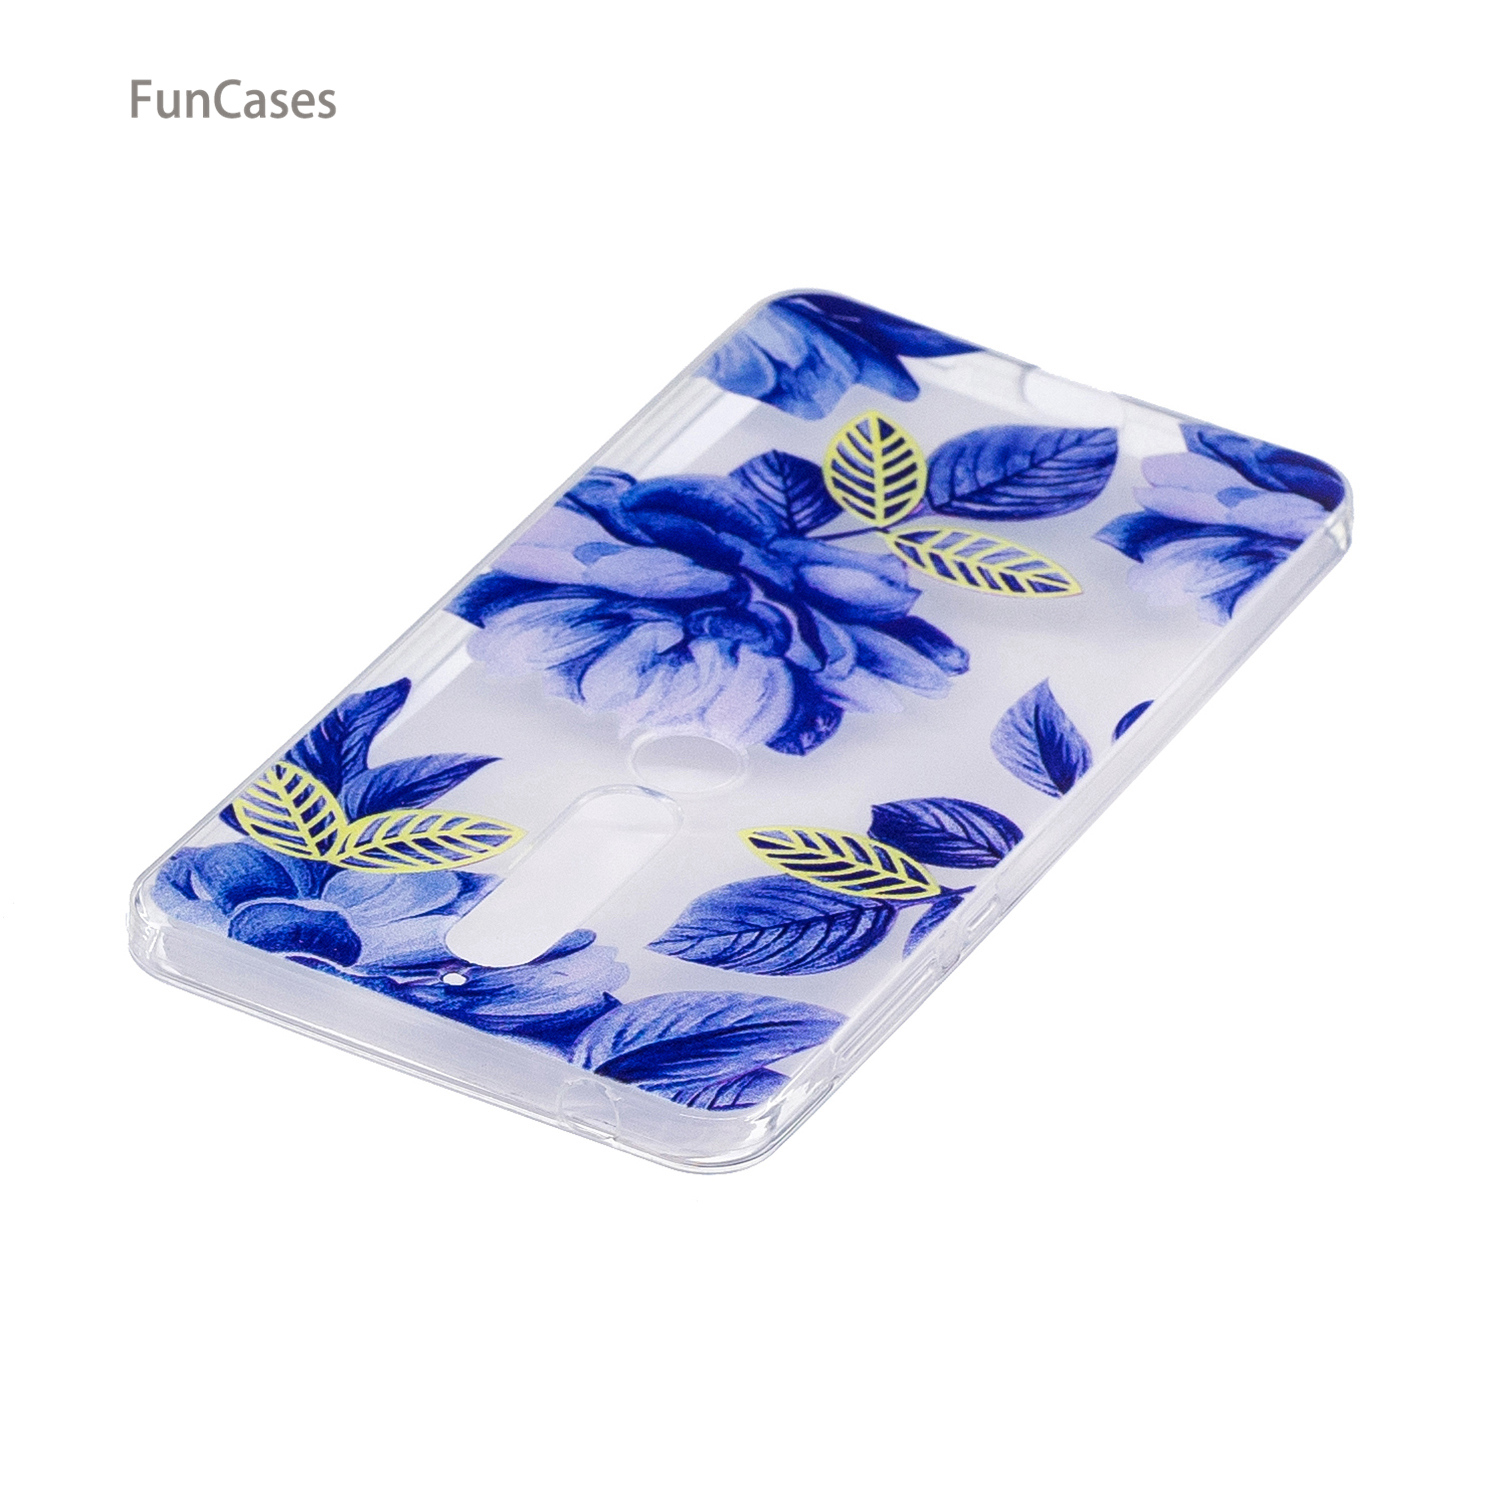 50 patterns! Flower Case sFor Hoesje Nokia 6 2018 Soft TPU Phone Case Carcasas Exotic Cellphone Case sFor Nokia 6 2018 Husa Skal